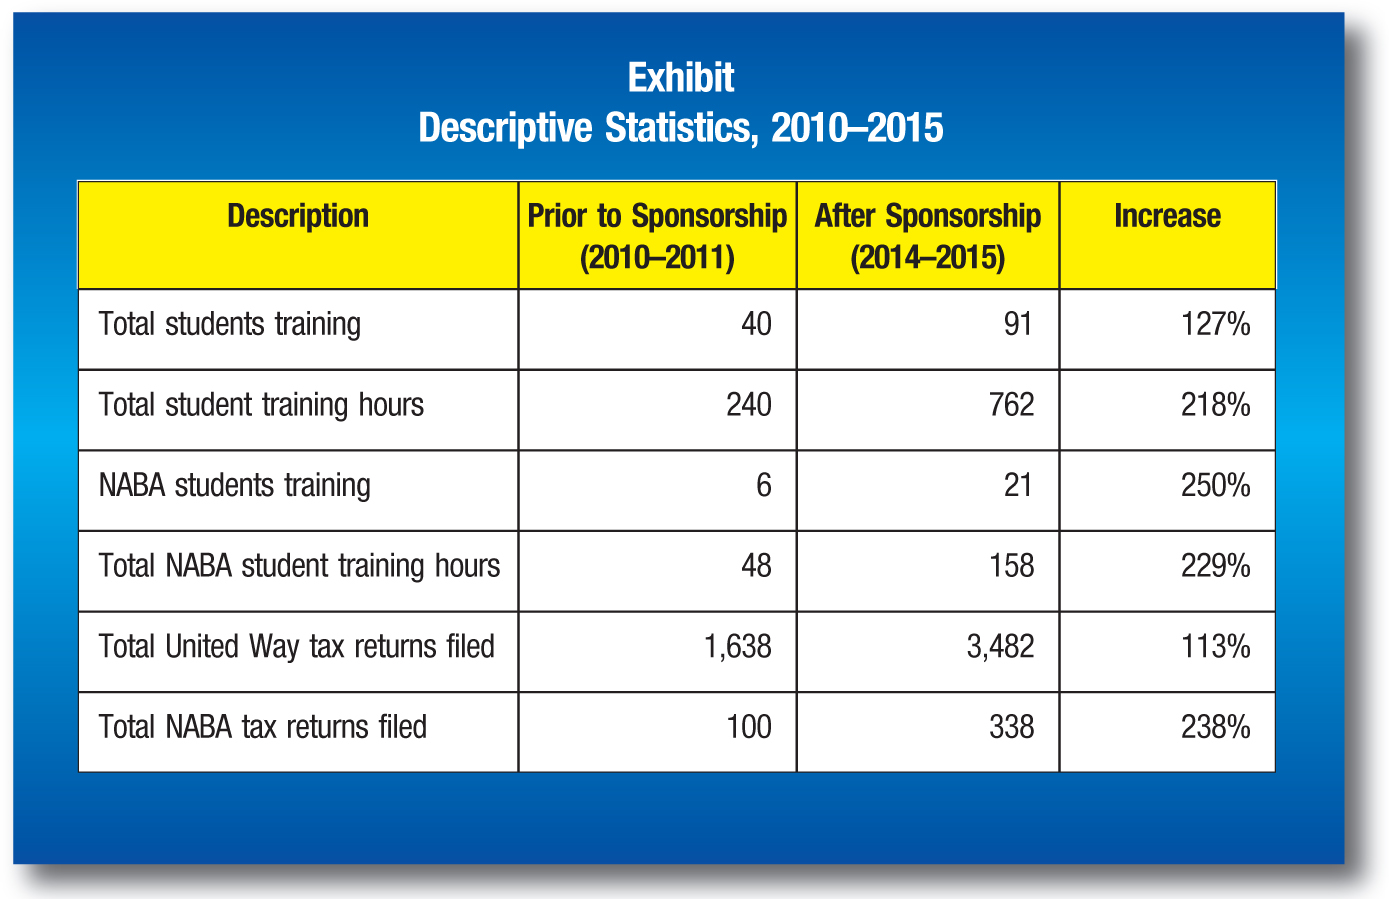 Description; Prior to Sponsorship (2010–2011); After Sponsorship (2014–2015); Increase Total students training; 40; 91; 127% Total student training hours; 240; 762; 218% NABA students training; 6; 21; 250% Total NABA student training hours; 48; 158; 229% Total United Way tax returns filed; 1,638; 3,482; 113% Total NABA tax returns filed; 100; 338; 238%